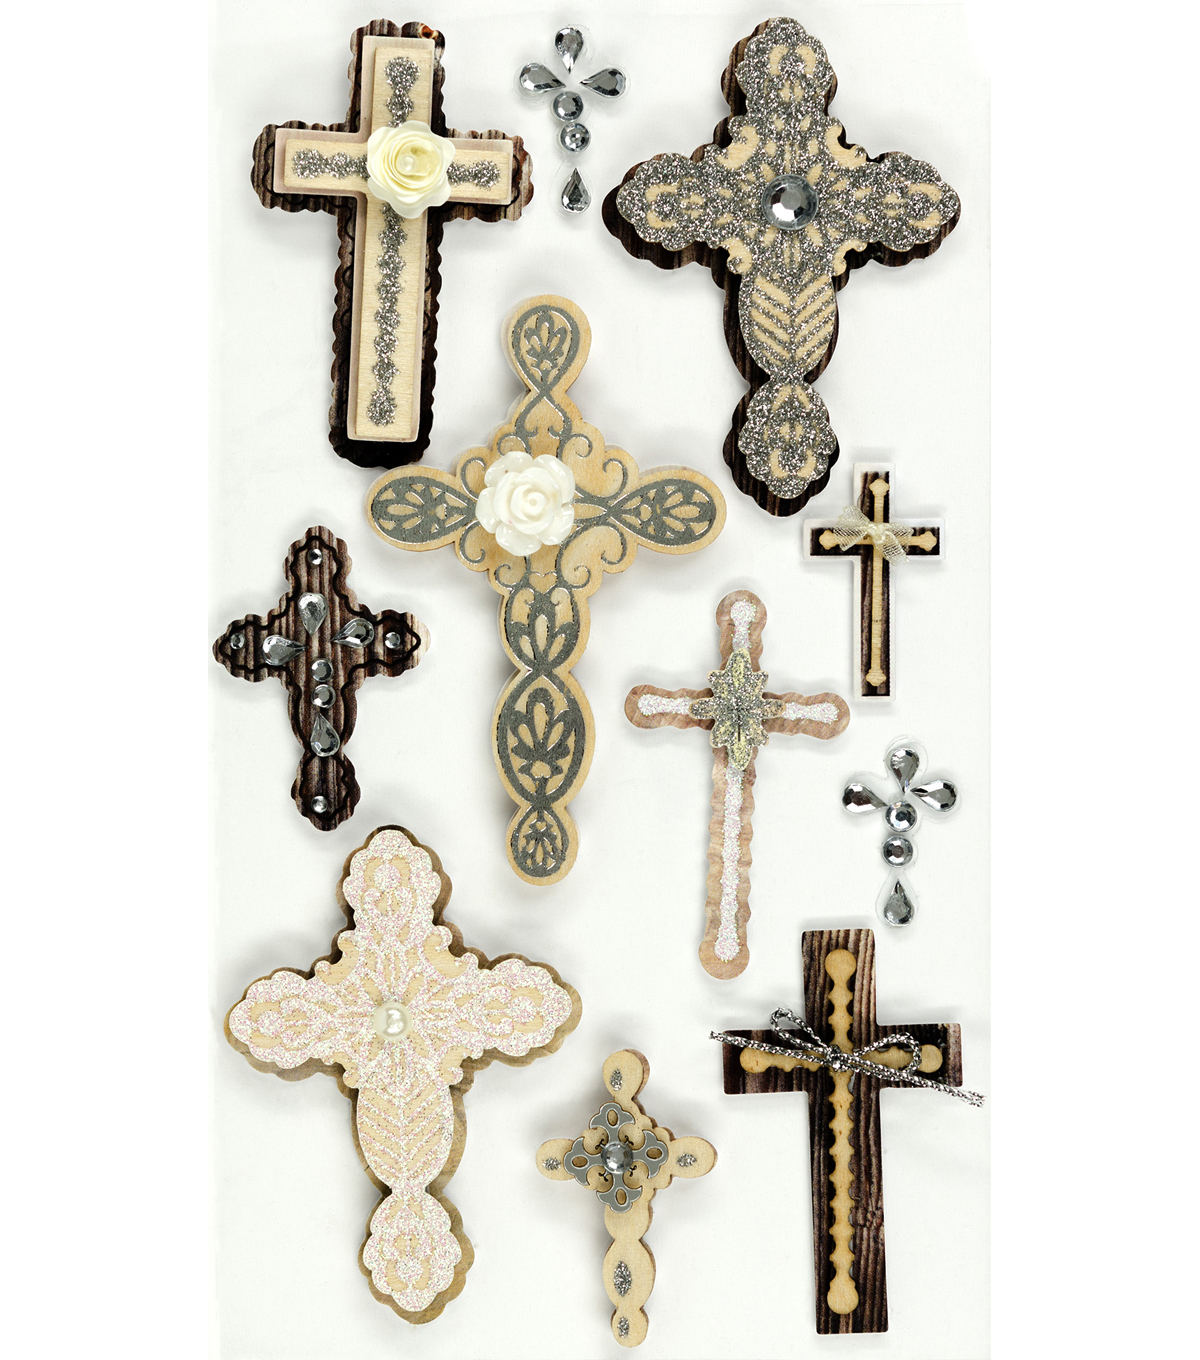 Jolee's Boutique Dimensional Stickers-Large Crosses